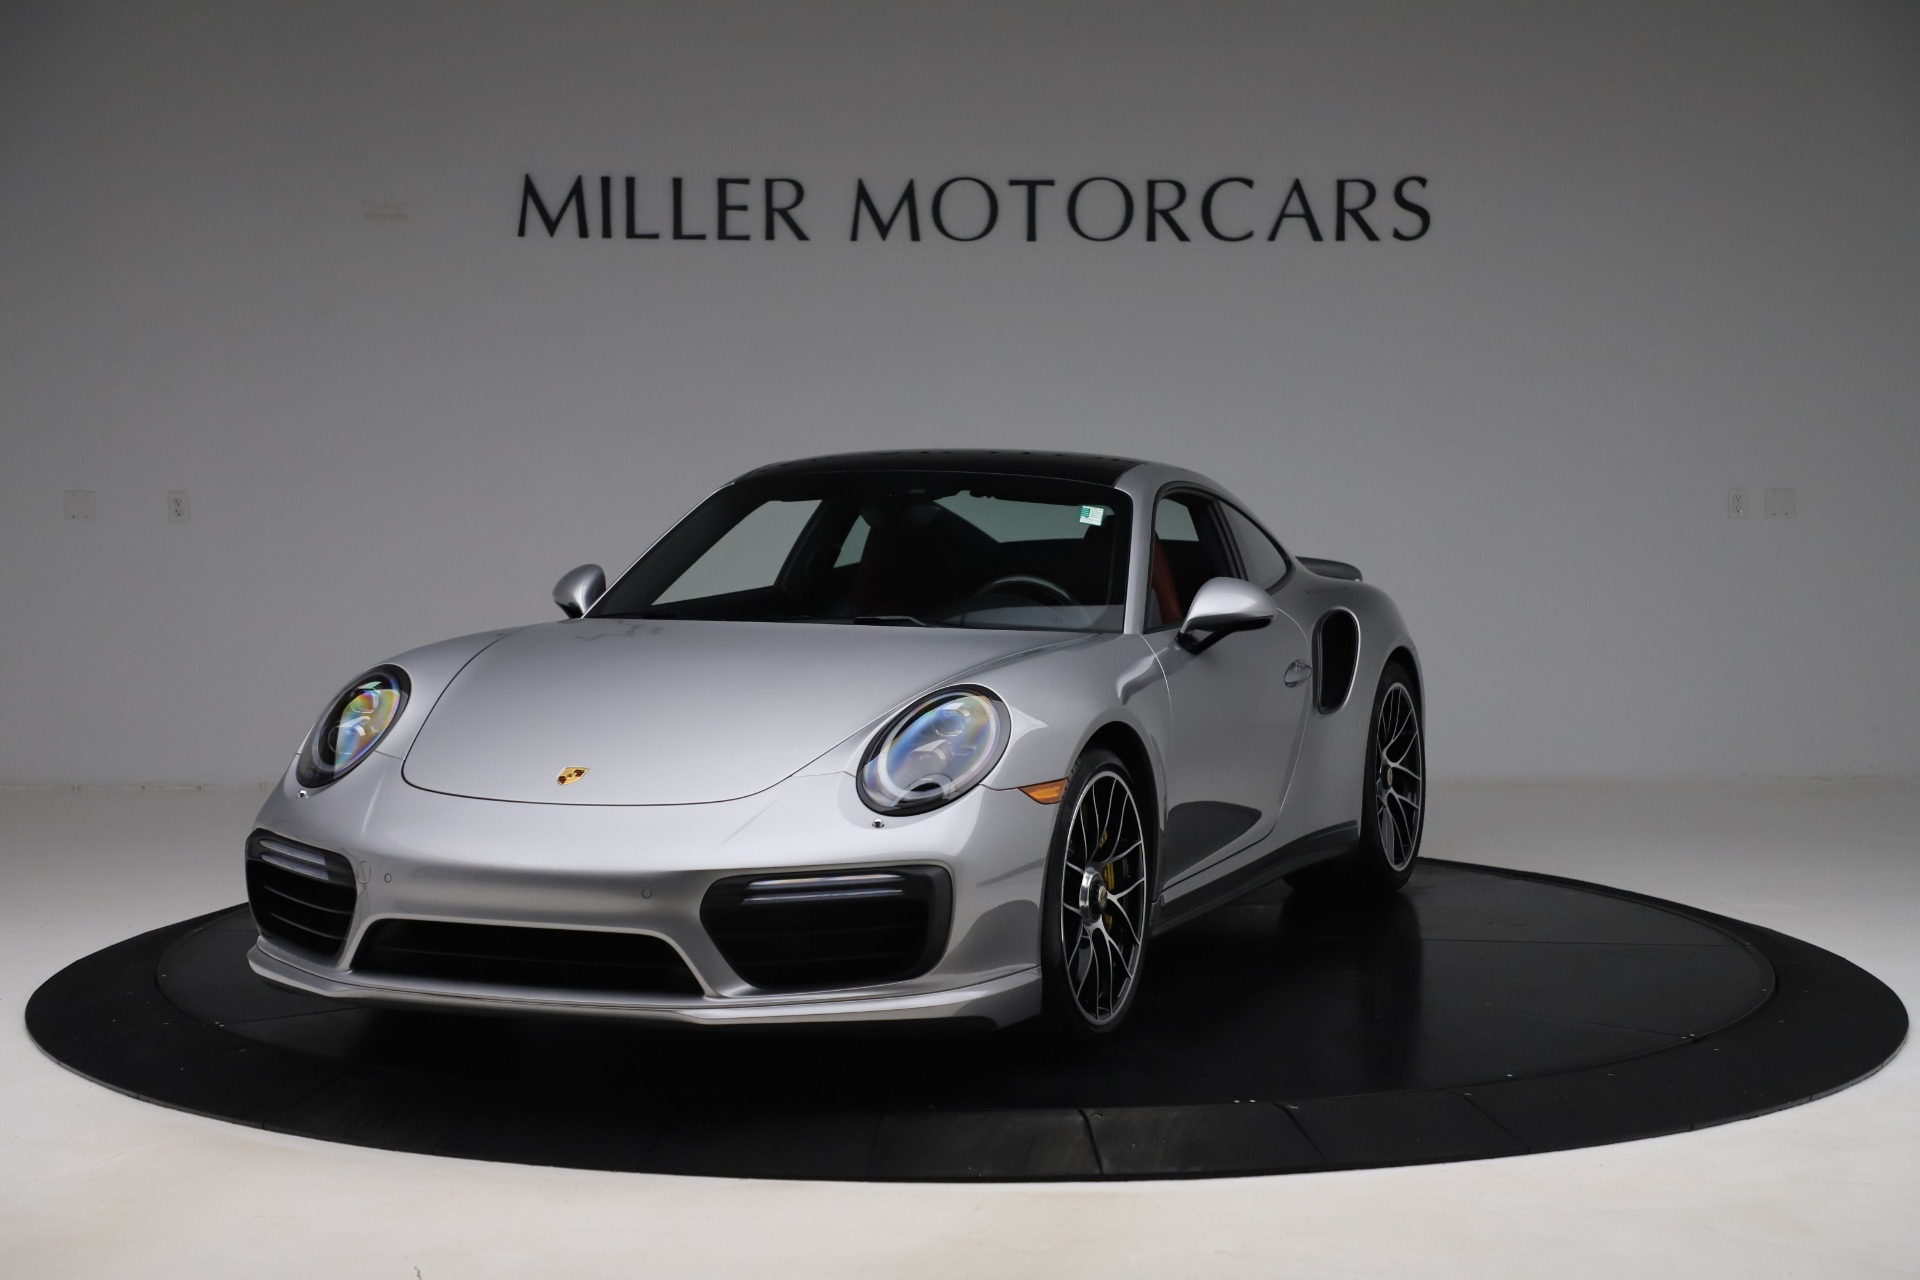 Used 2017 Porsche 911 Turbo S for sale $154,900 at Rolls-Royce Motor Cars Greenwich in Greenwich CT 06830 1